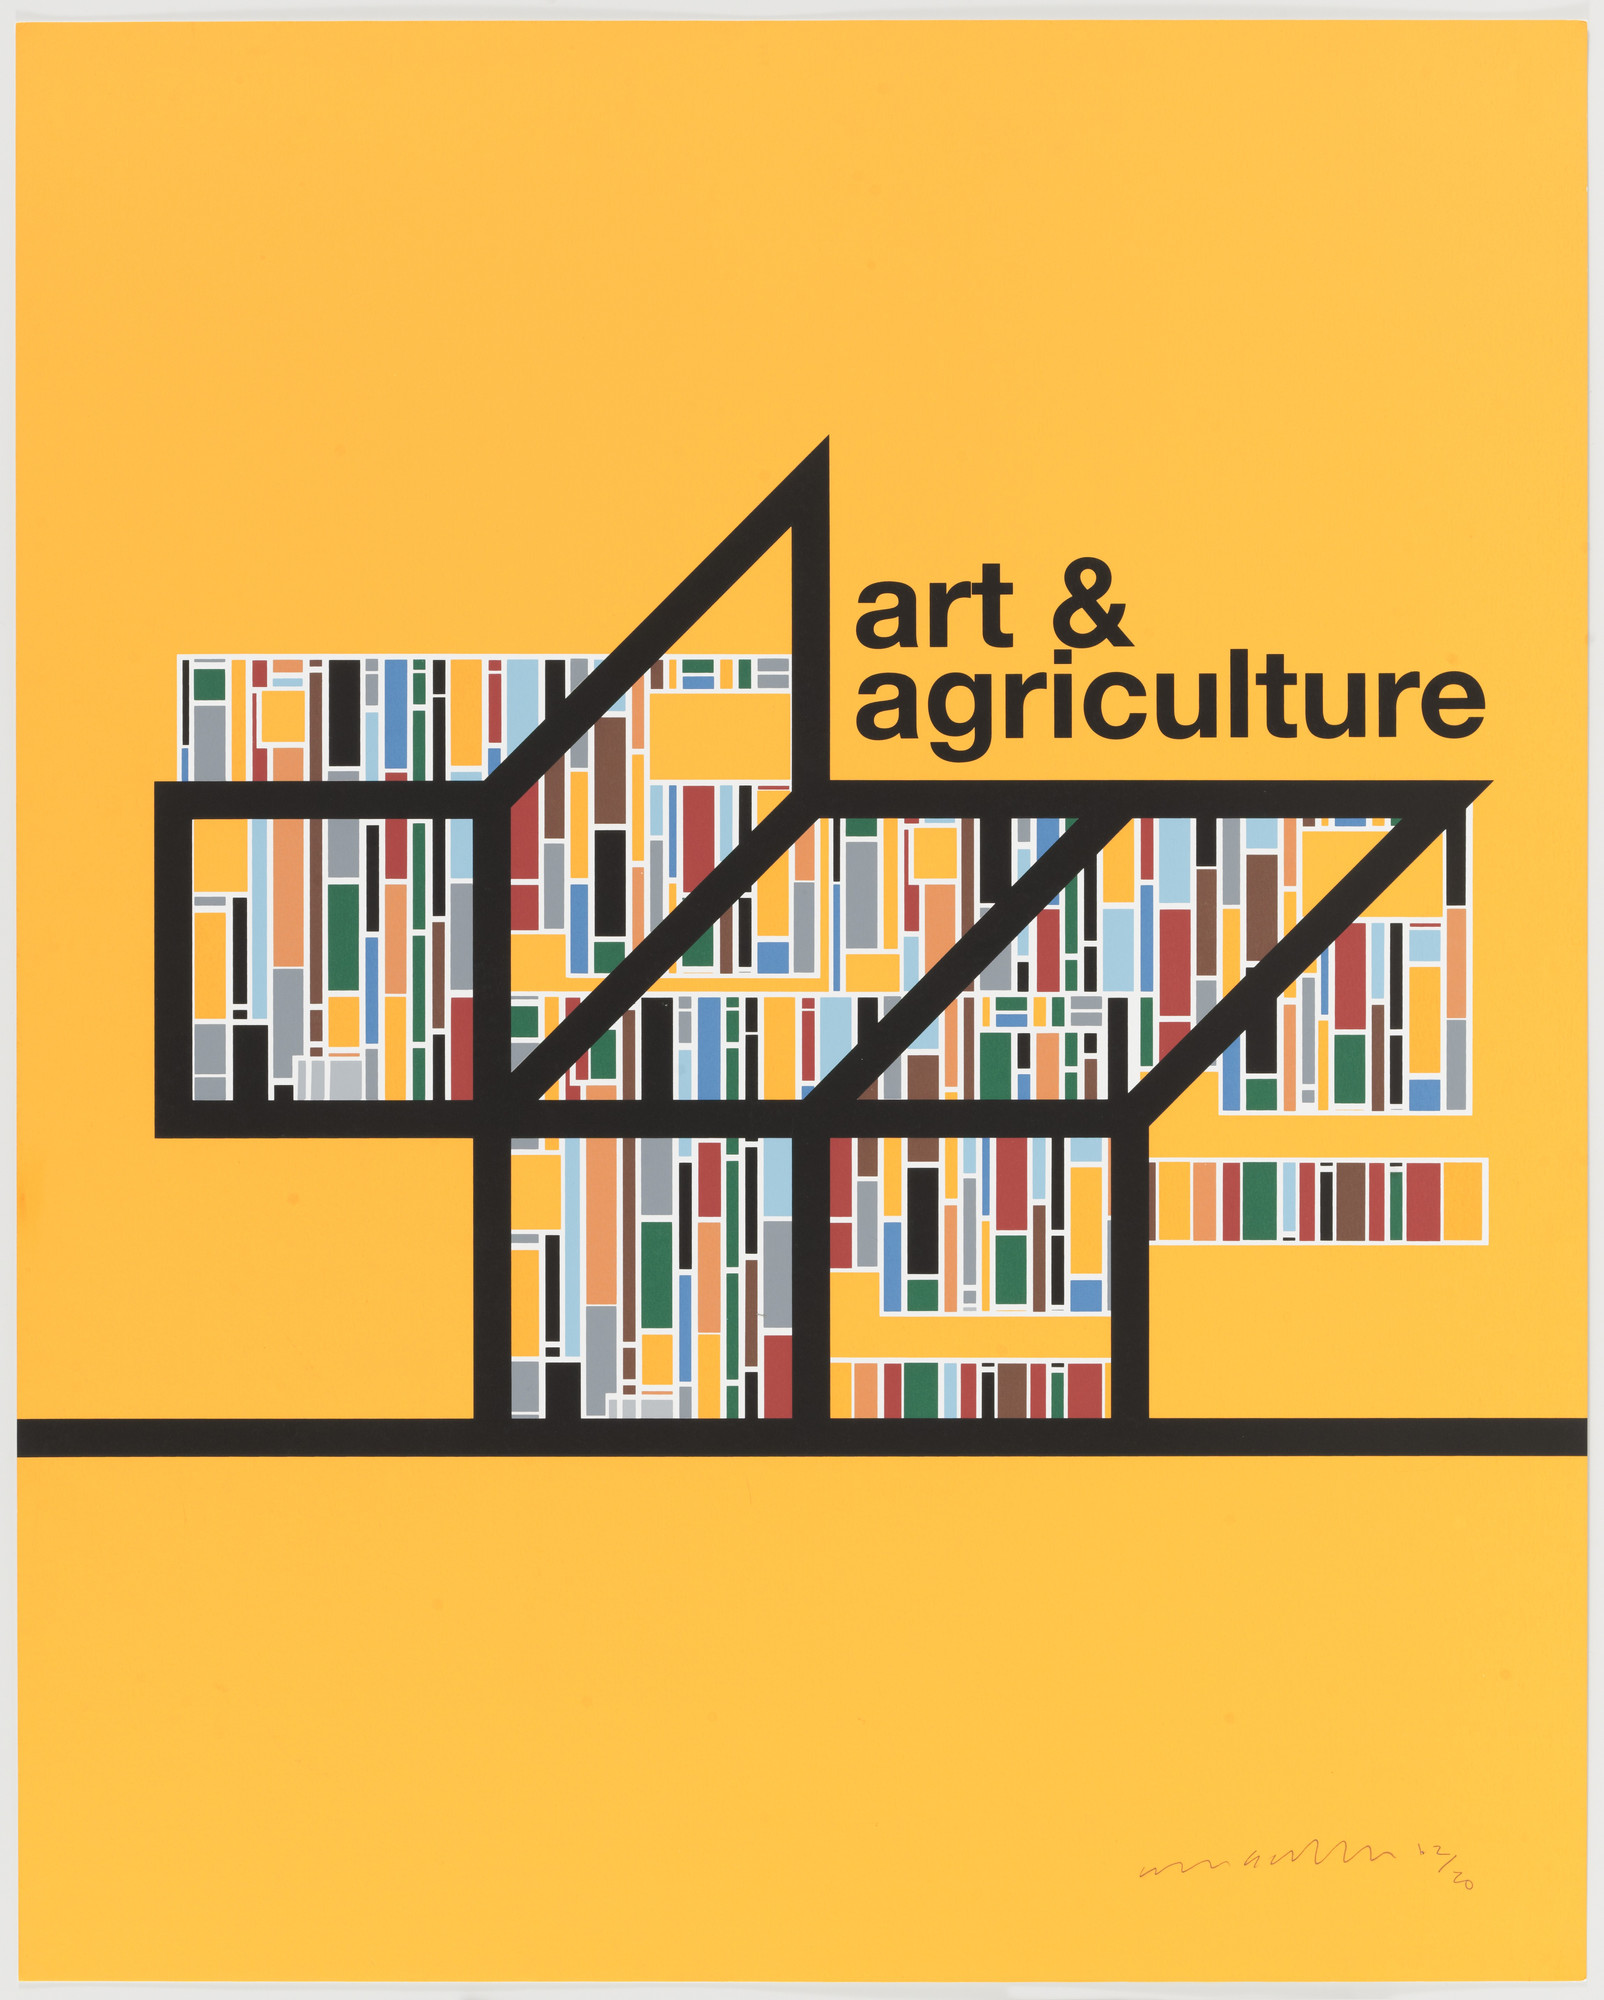 Liam Gillick. Agriculture, Anarchy, Chemistry, Dentistry, Fishing, Plumbing. 2011